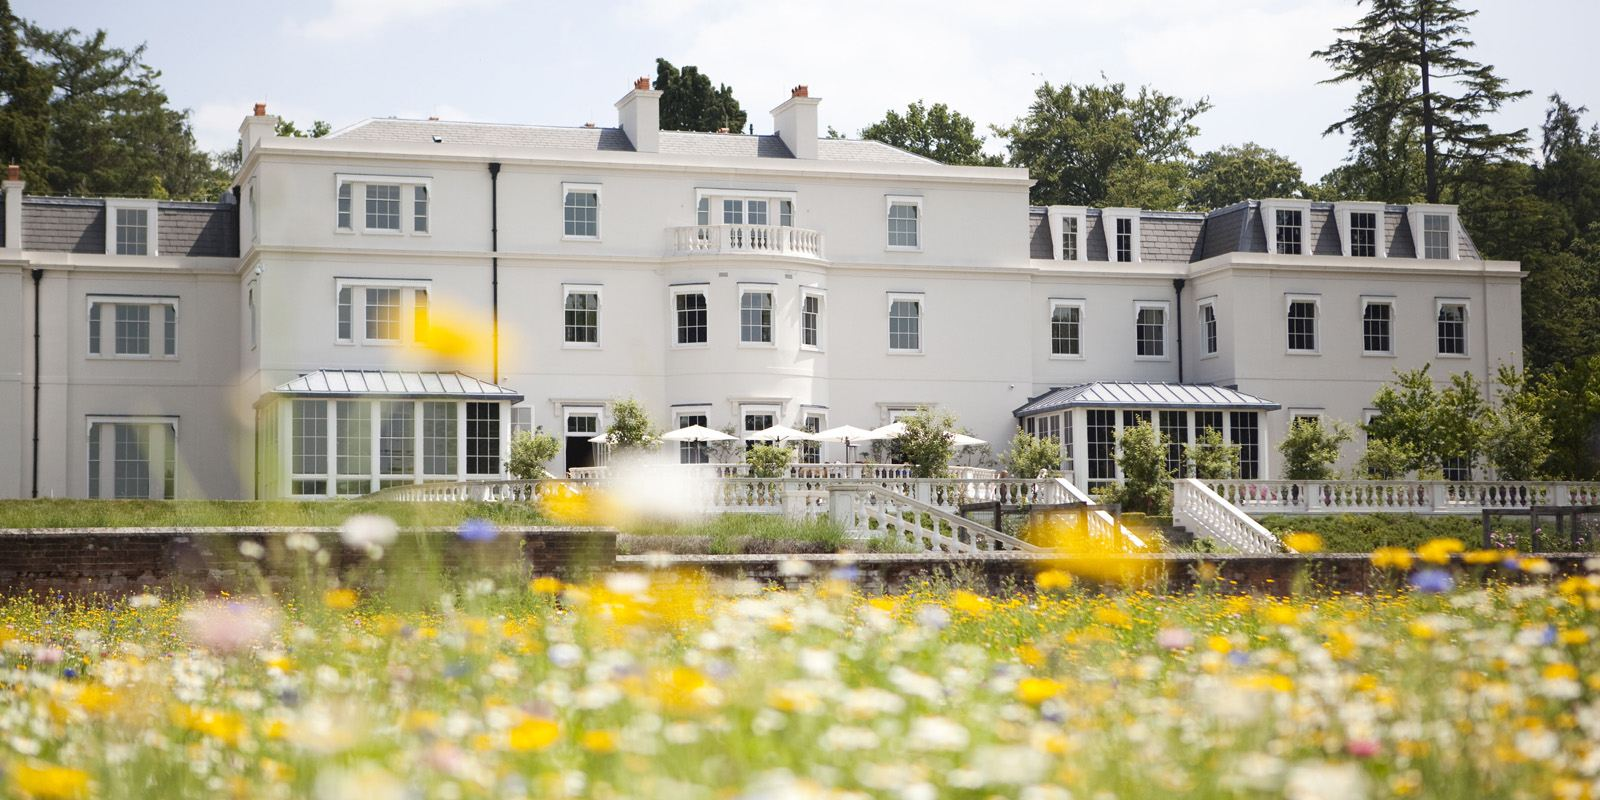 coworth-park-hotel-exterior-in-summer